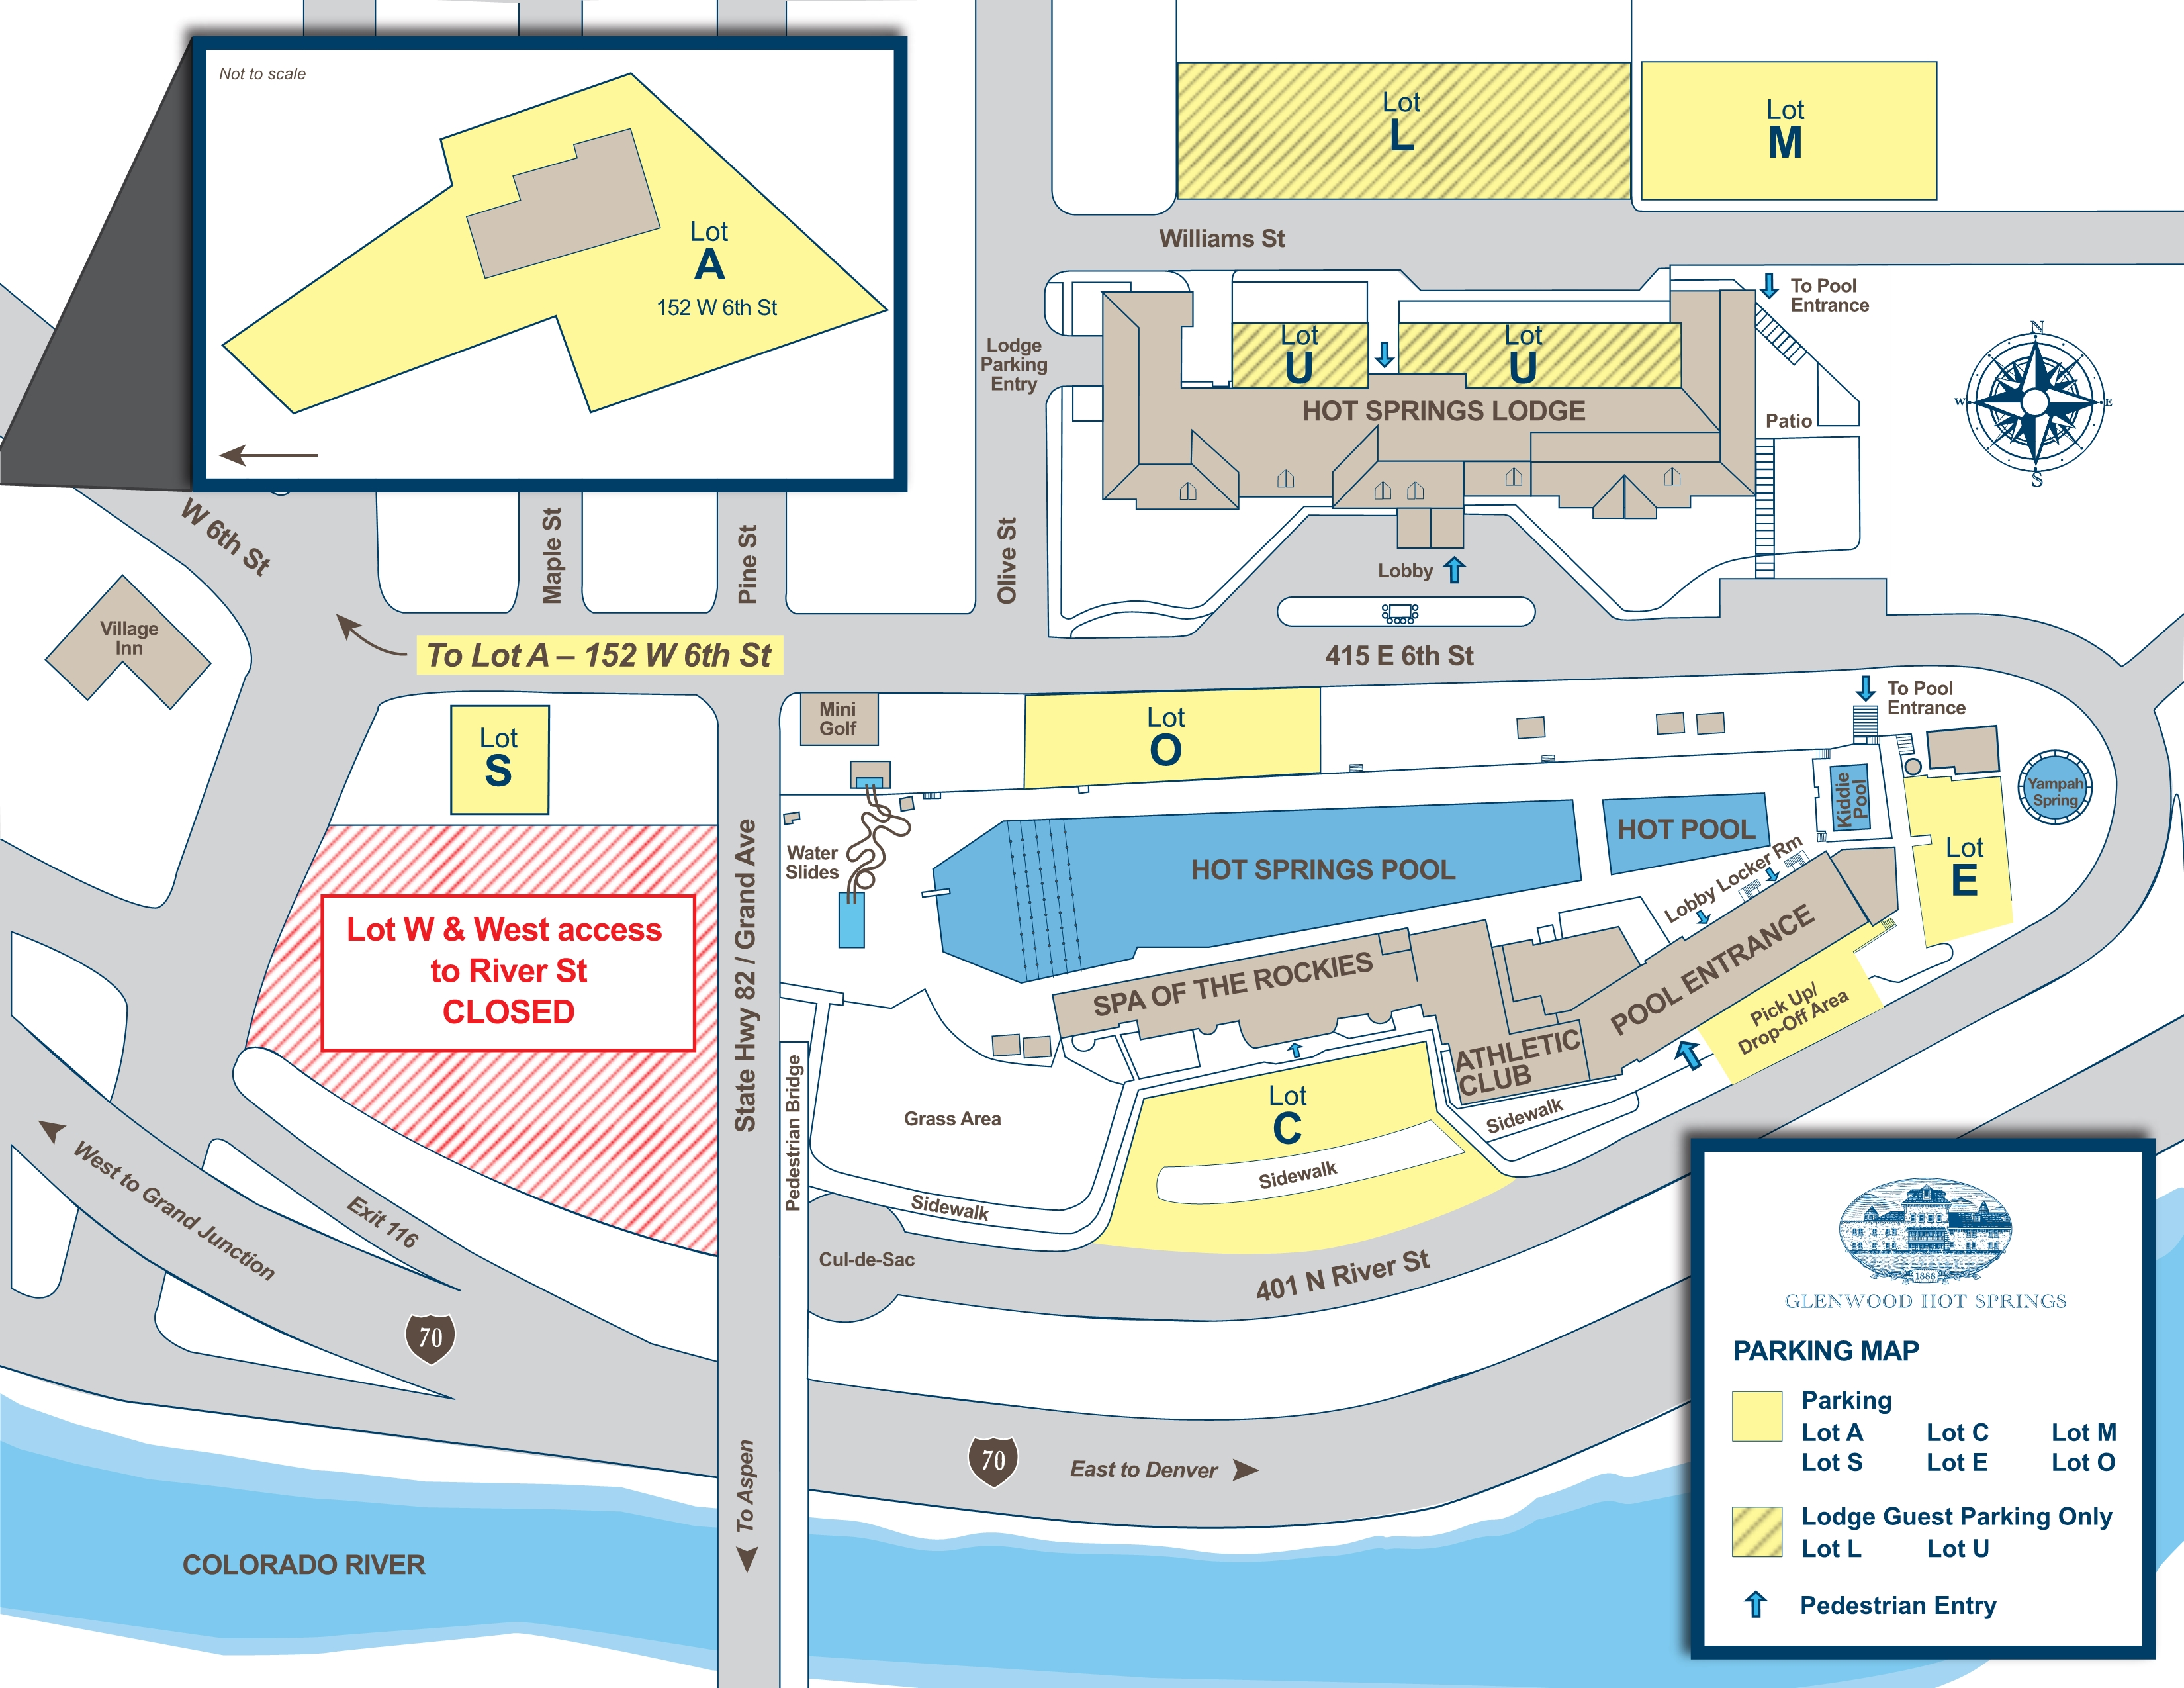 glenwood hot springs parking map . new shuttle service and parking options now available as glenwood